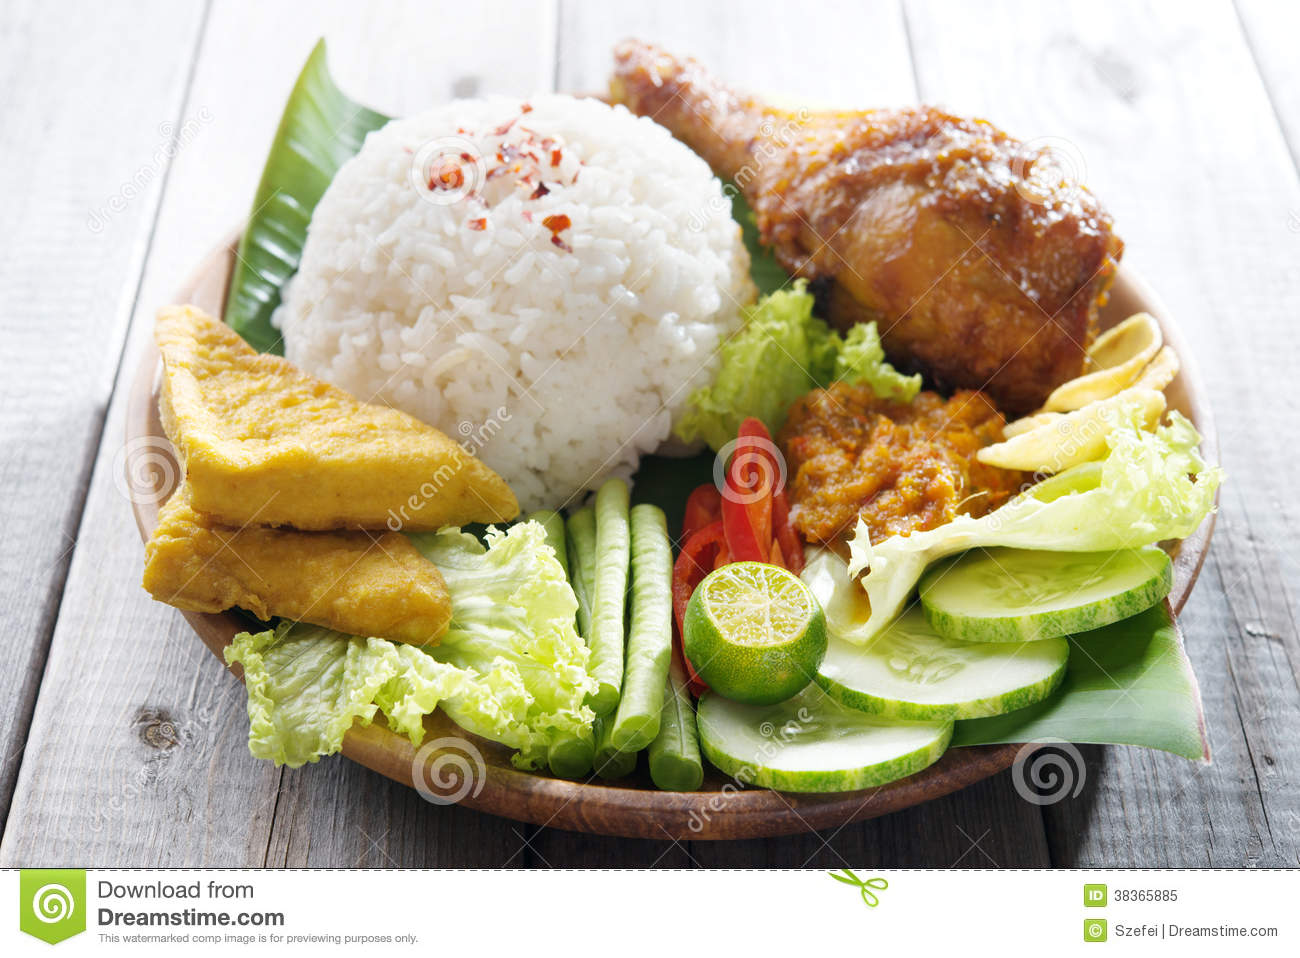 Popular indonesian local food royalty free stock photo for Authentic indonesian cuisine